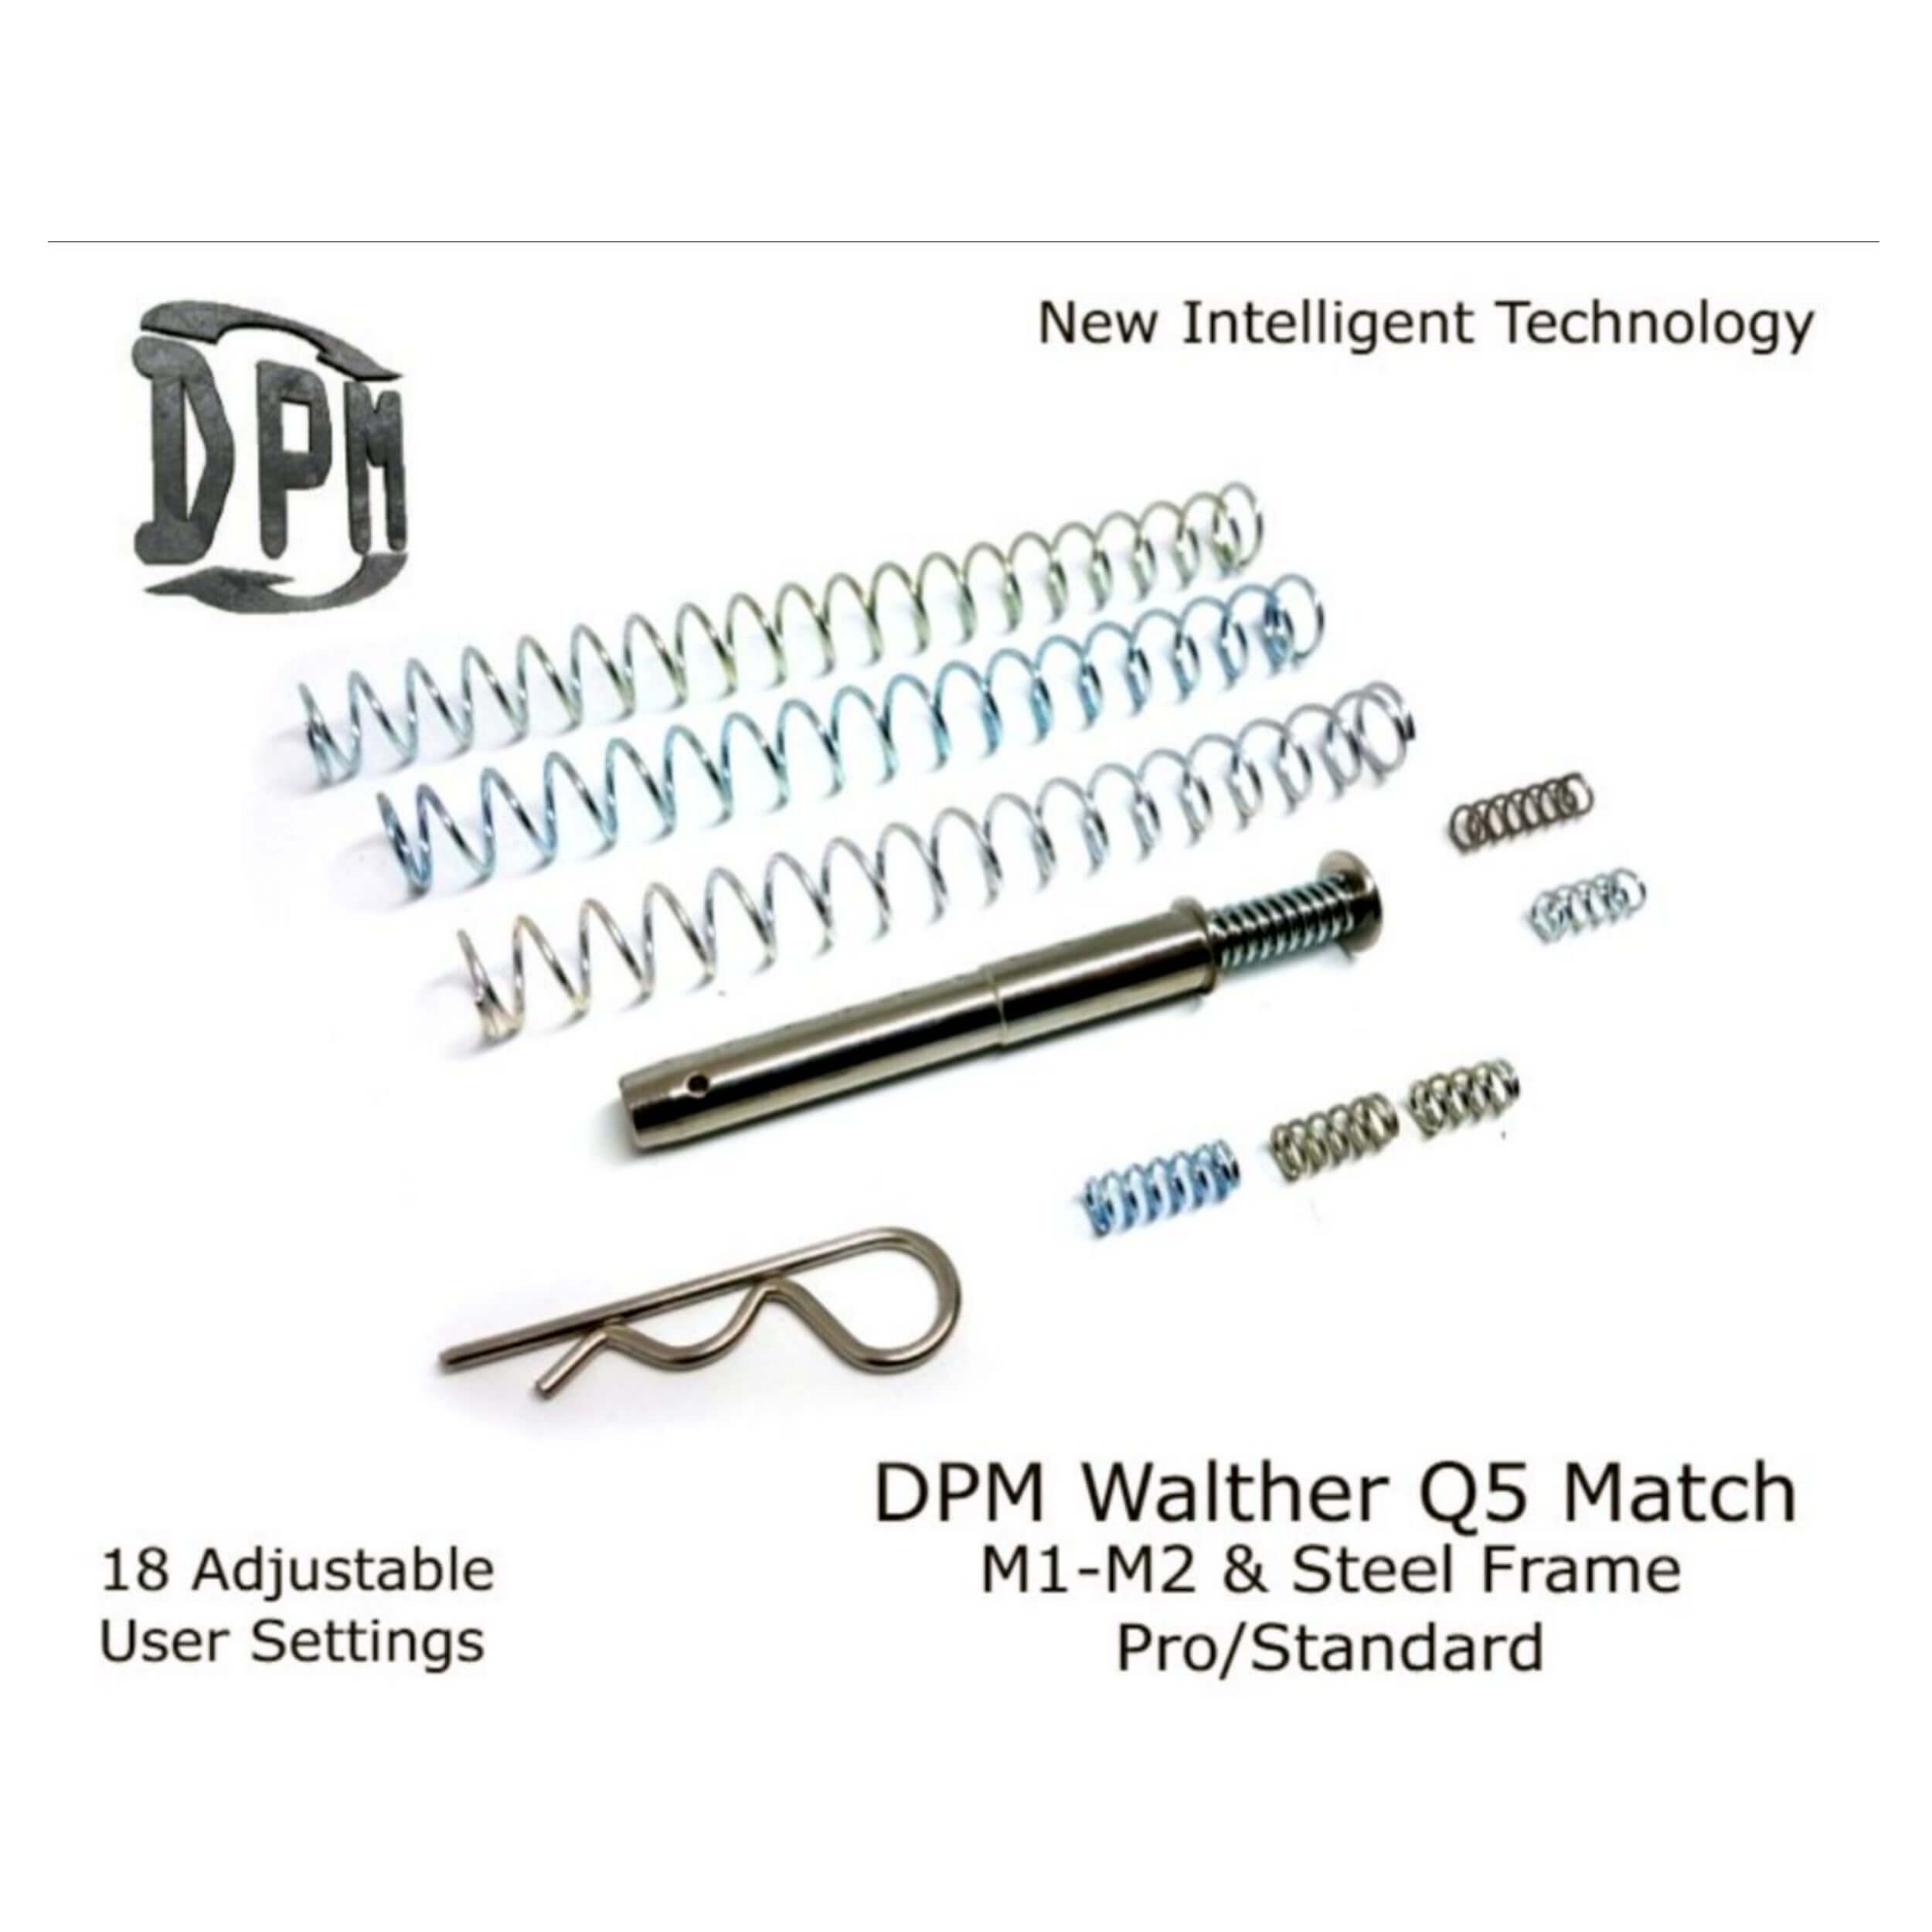 WALTHER Q5 Match M1 M2 & Steel Frame